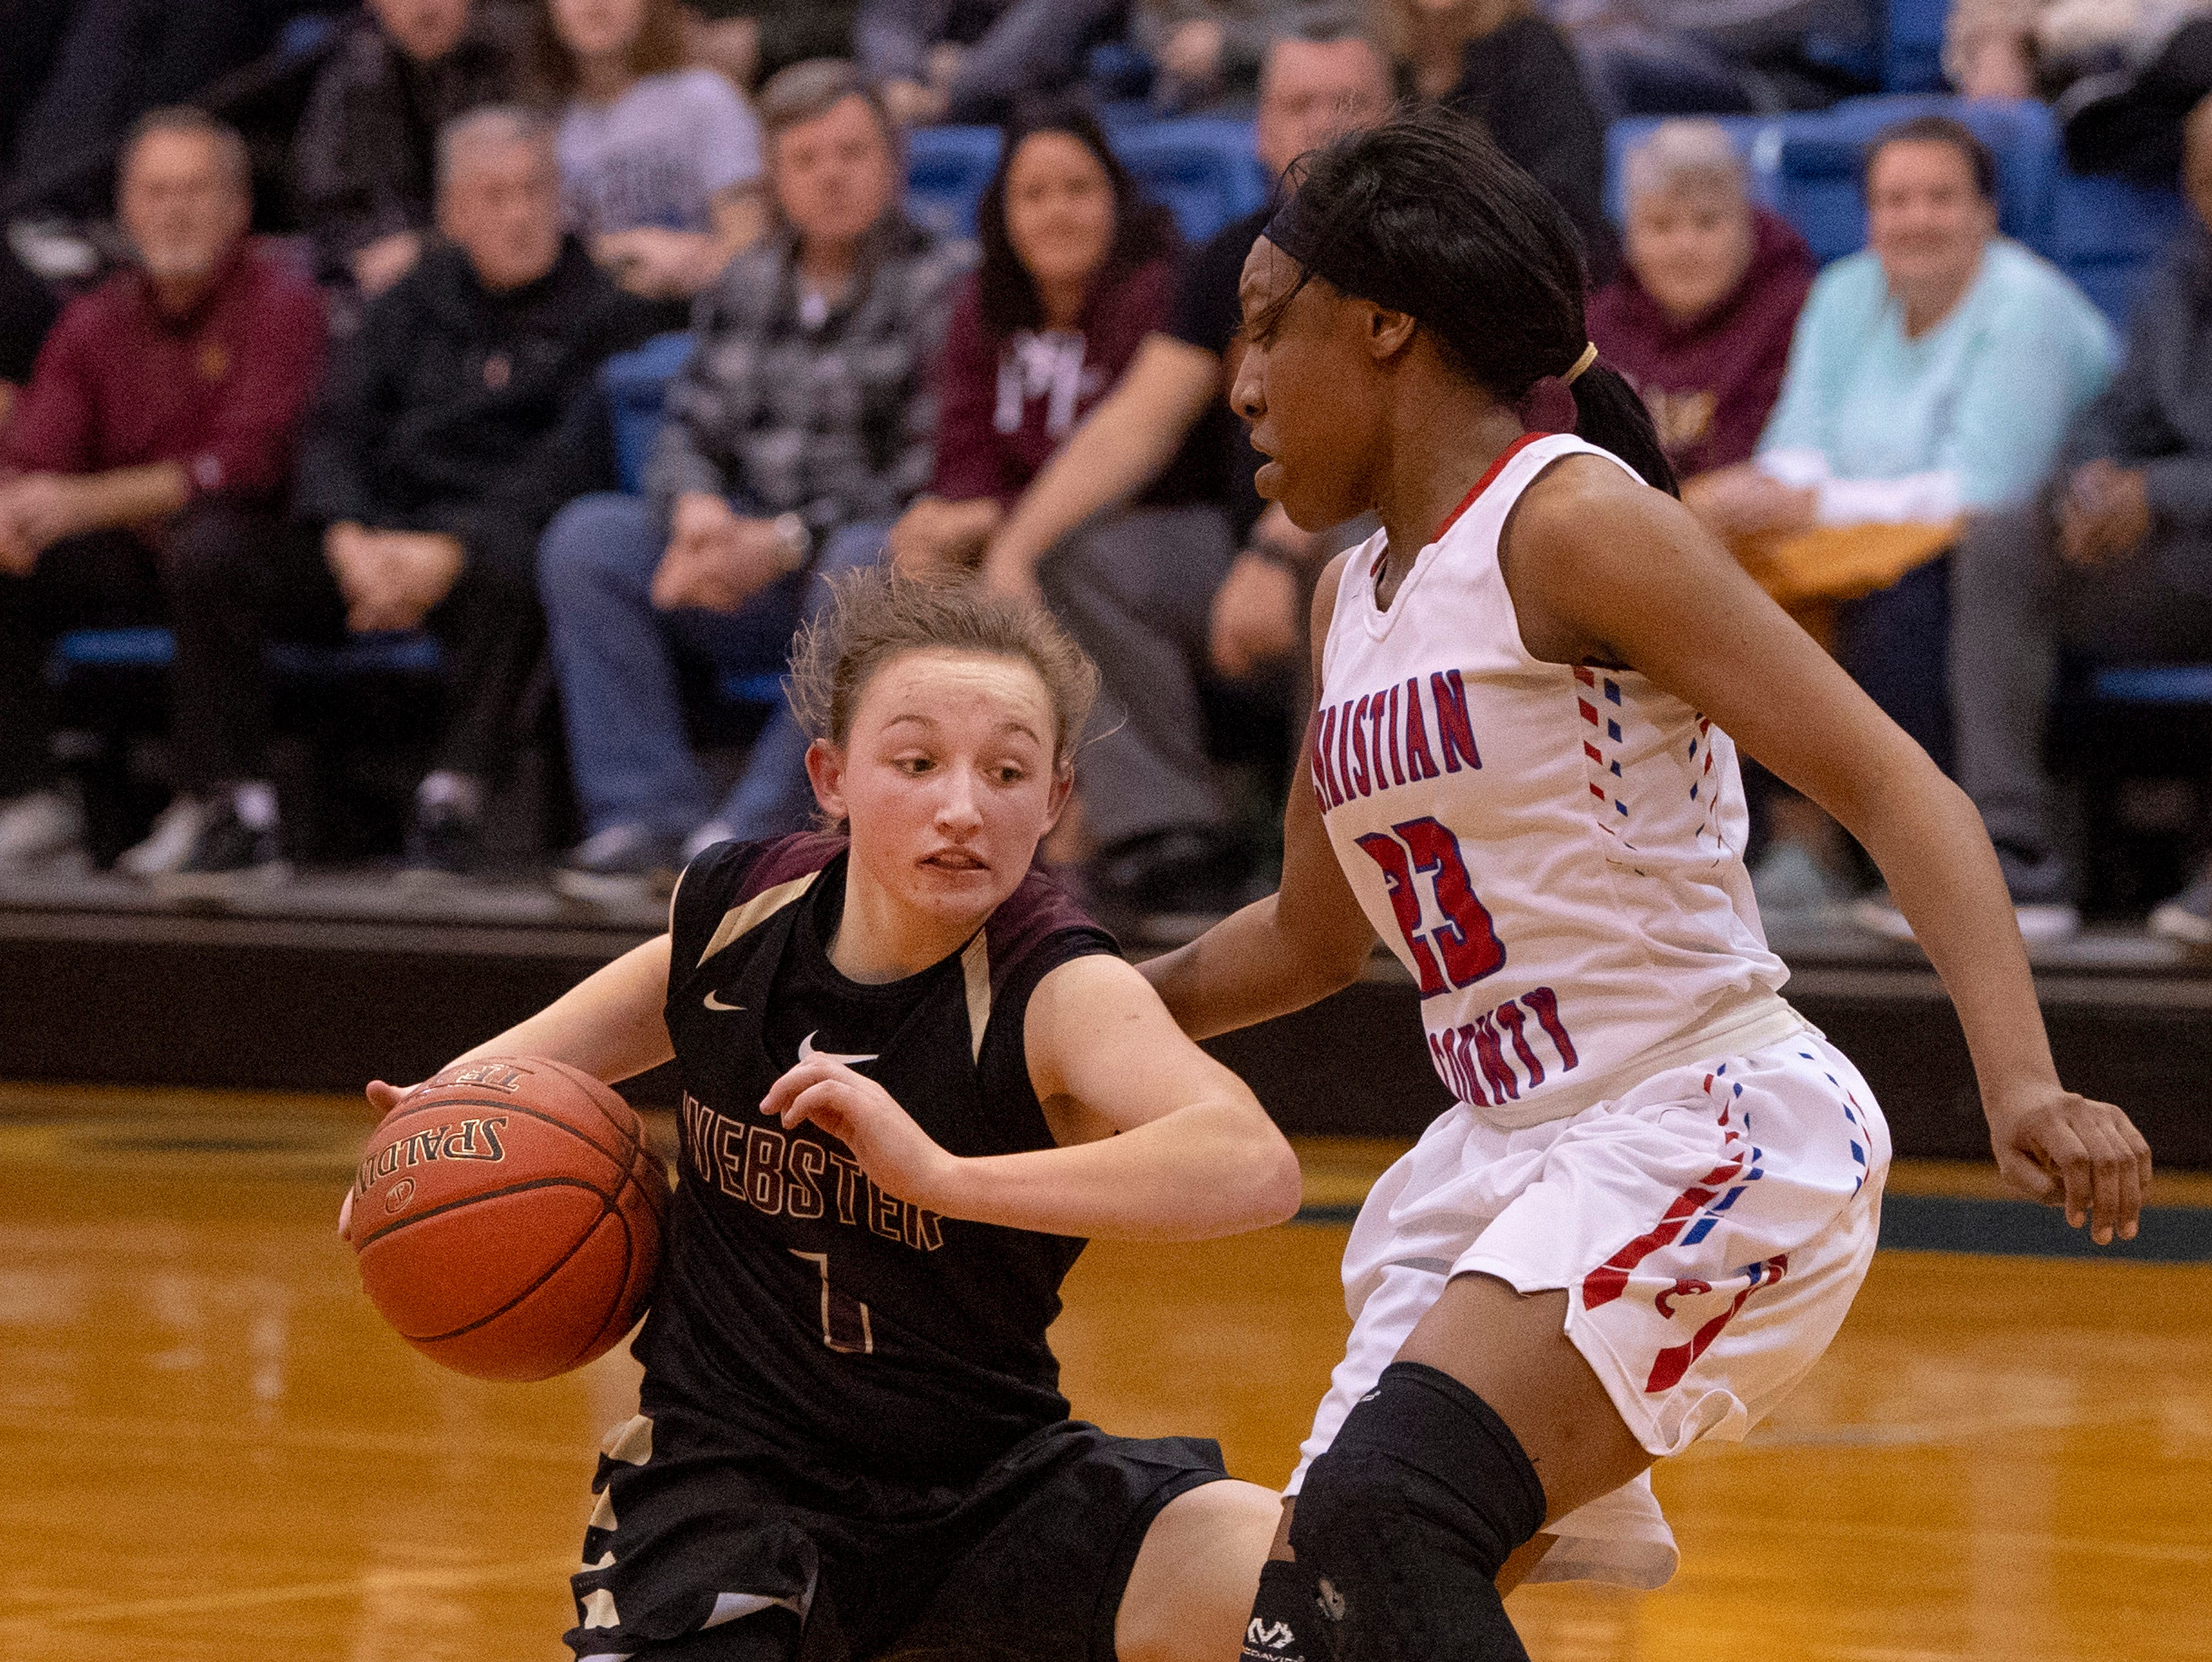 Webster County's Sadie Wurth (1) is defended by Christian's Aaliyah Hampton (23) during the Girls Region Tournament semifinals at the Rocket Arena in Marion, Ky., Monday night.